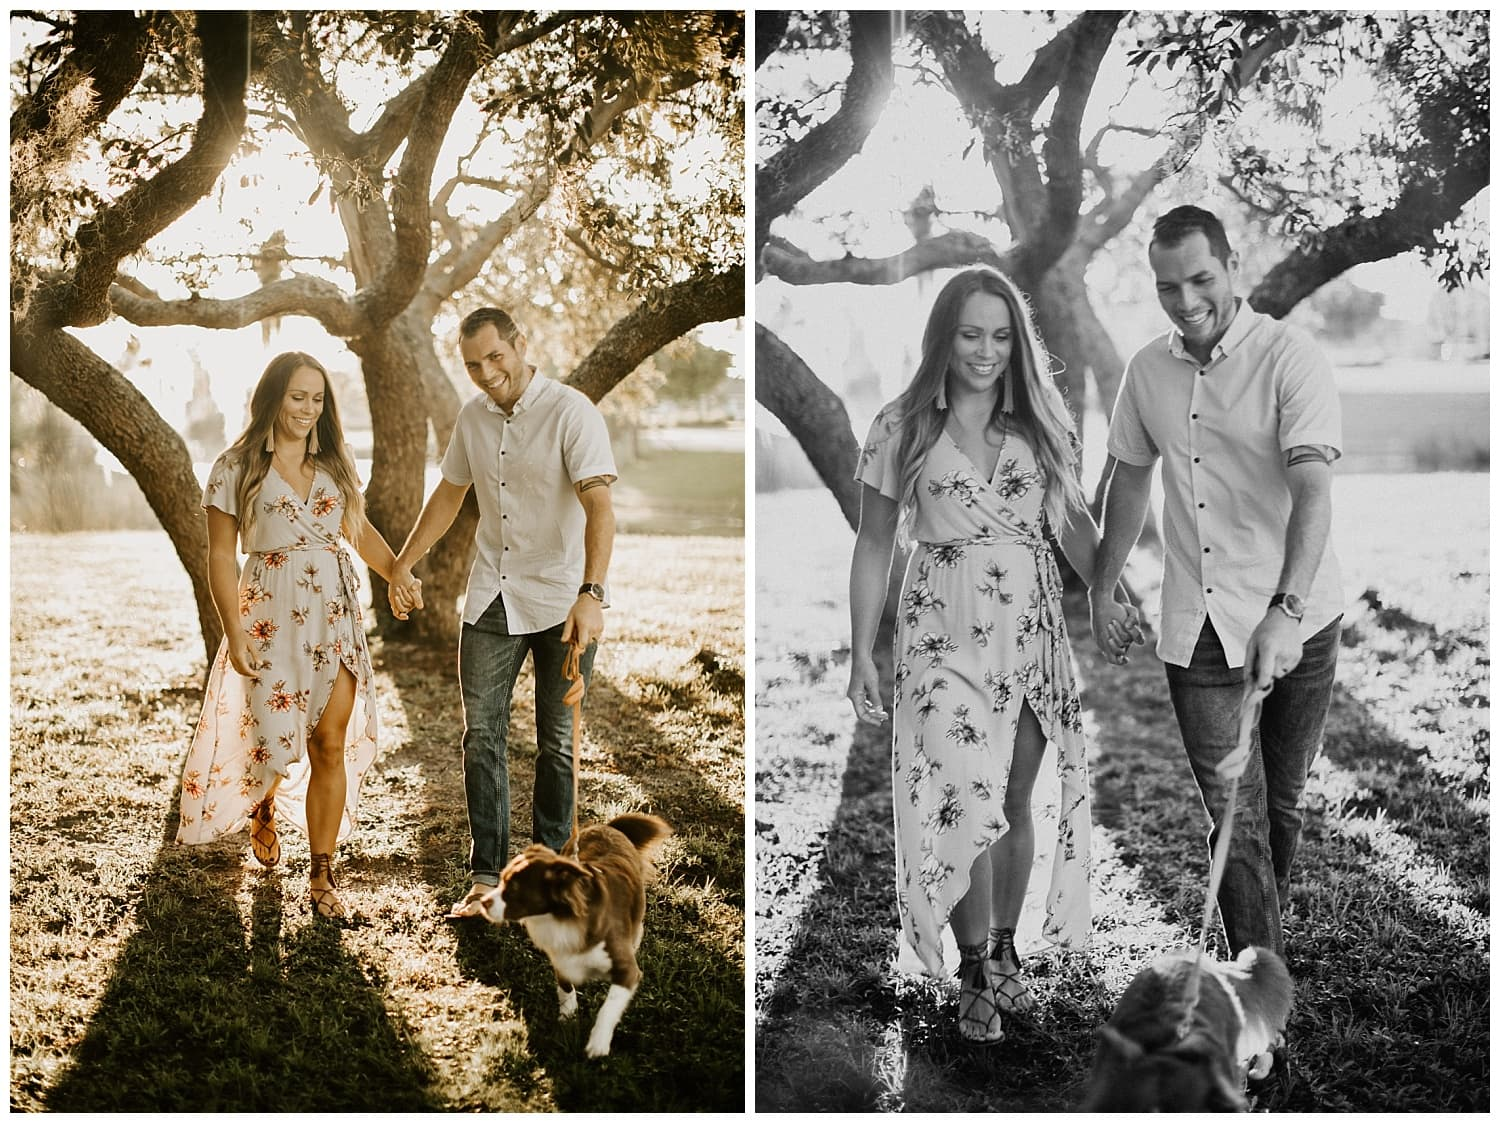 anniversary photos,border collie,couple walking their dog,couples photo session,couples photos,couples photoshoot,fur baby,palm beach photographer,port saint lucie botanical gardens,port saint lucie photographer,stuart photographer,